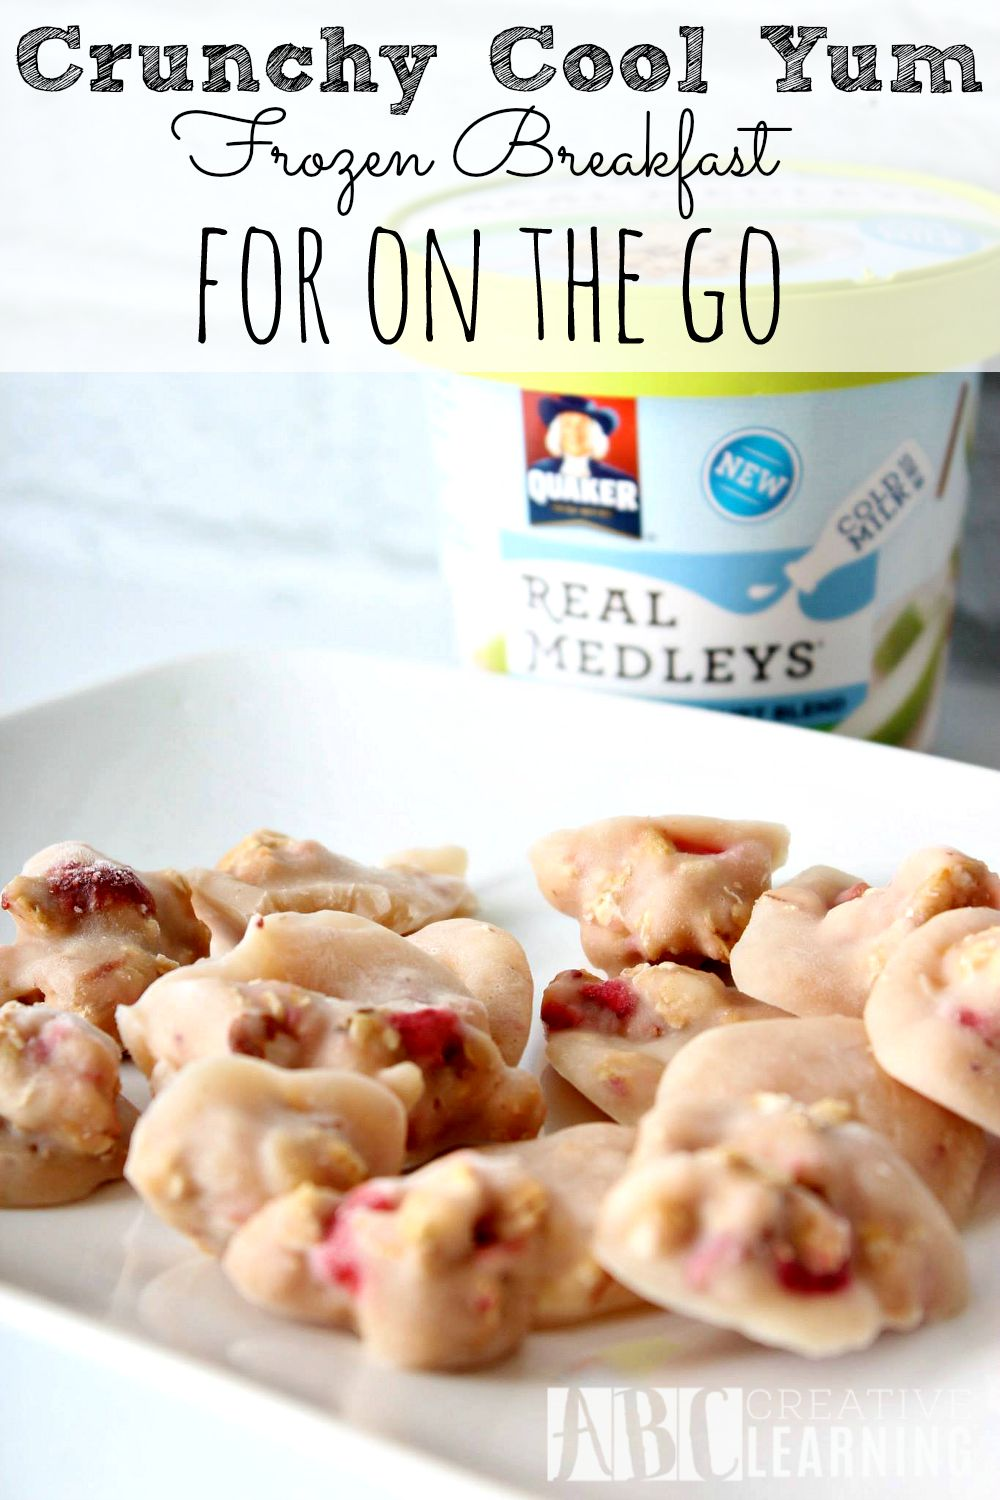 Crunchy Cool Yum Frozen Breakfast for On the Go